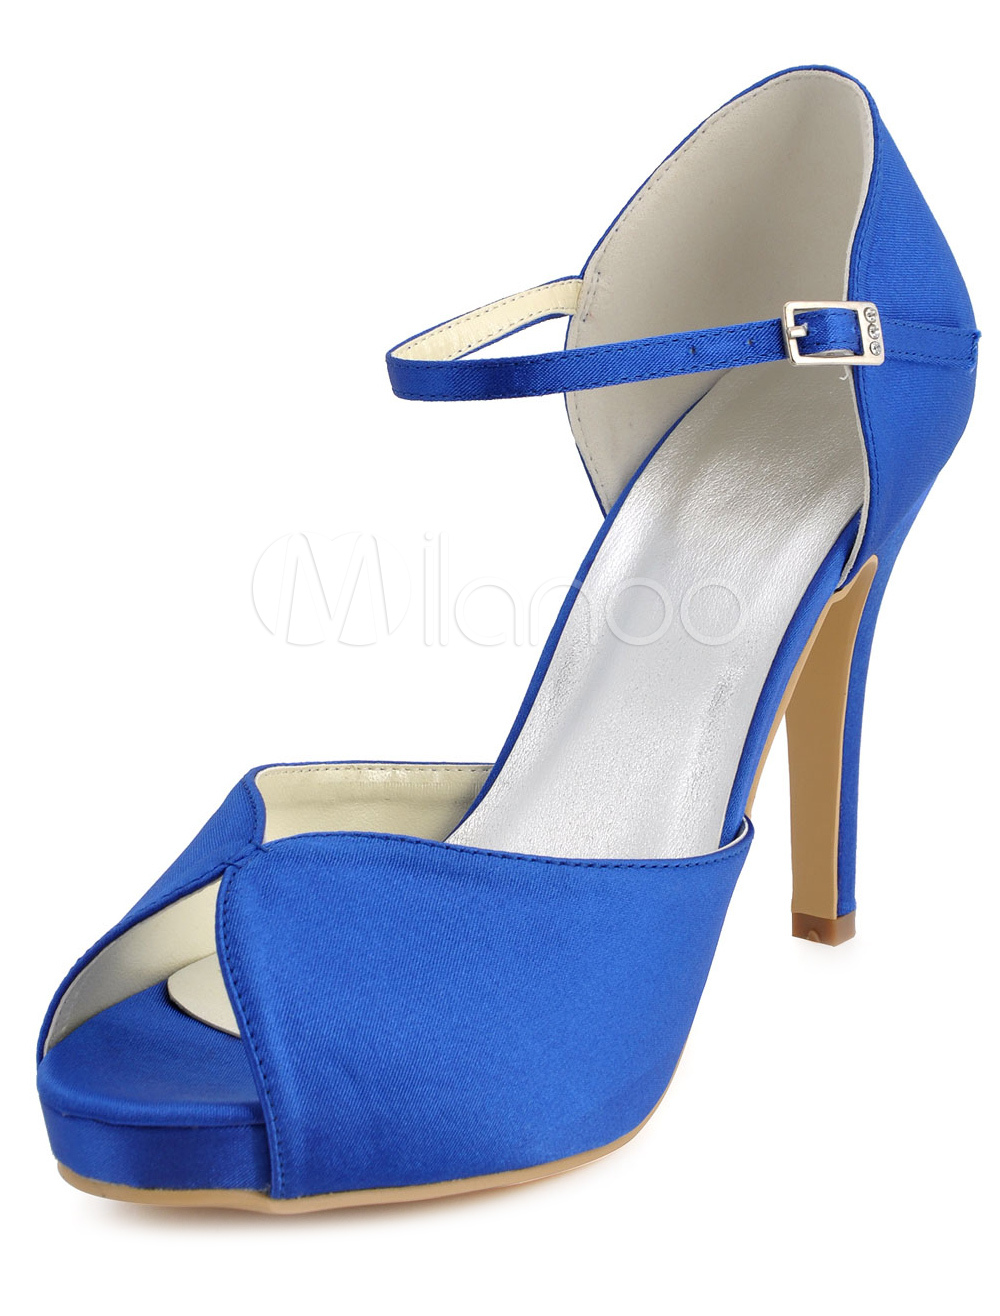 Buy Deep Blue Ankle Strap Peep Toe Silk And Satin Evening and Bride's Platforms for $56.99 in Milanoo store